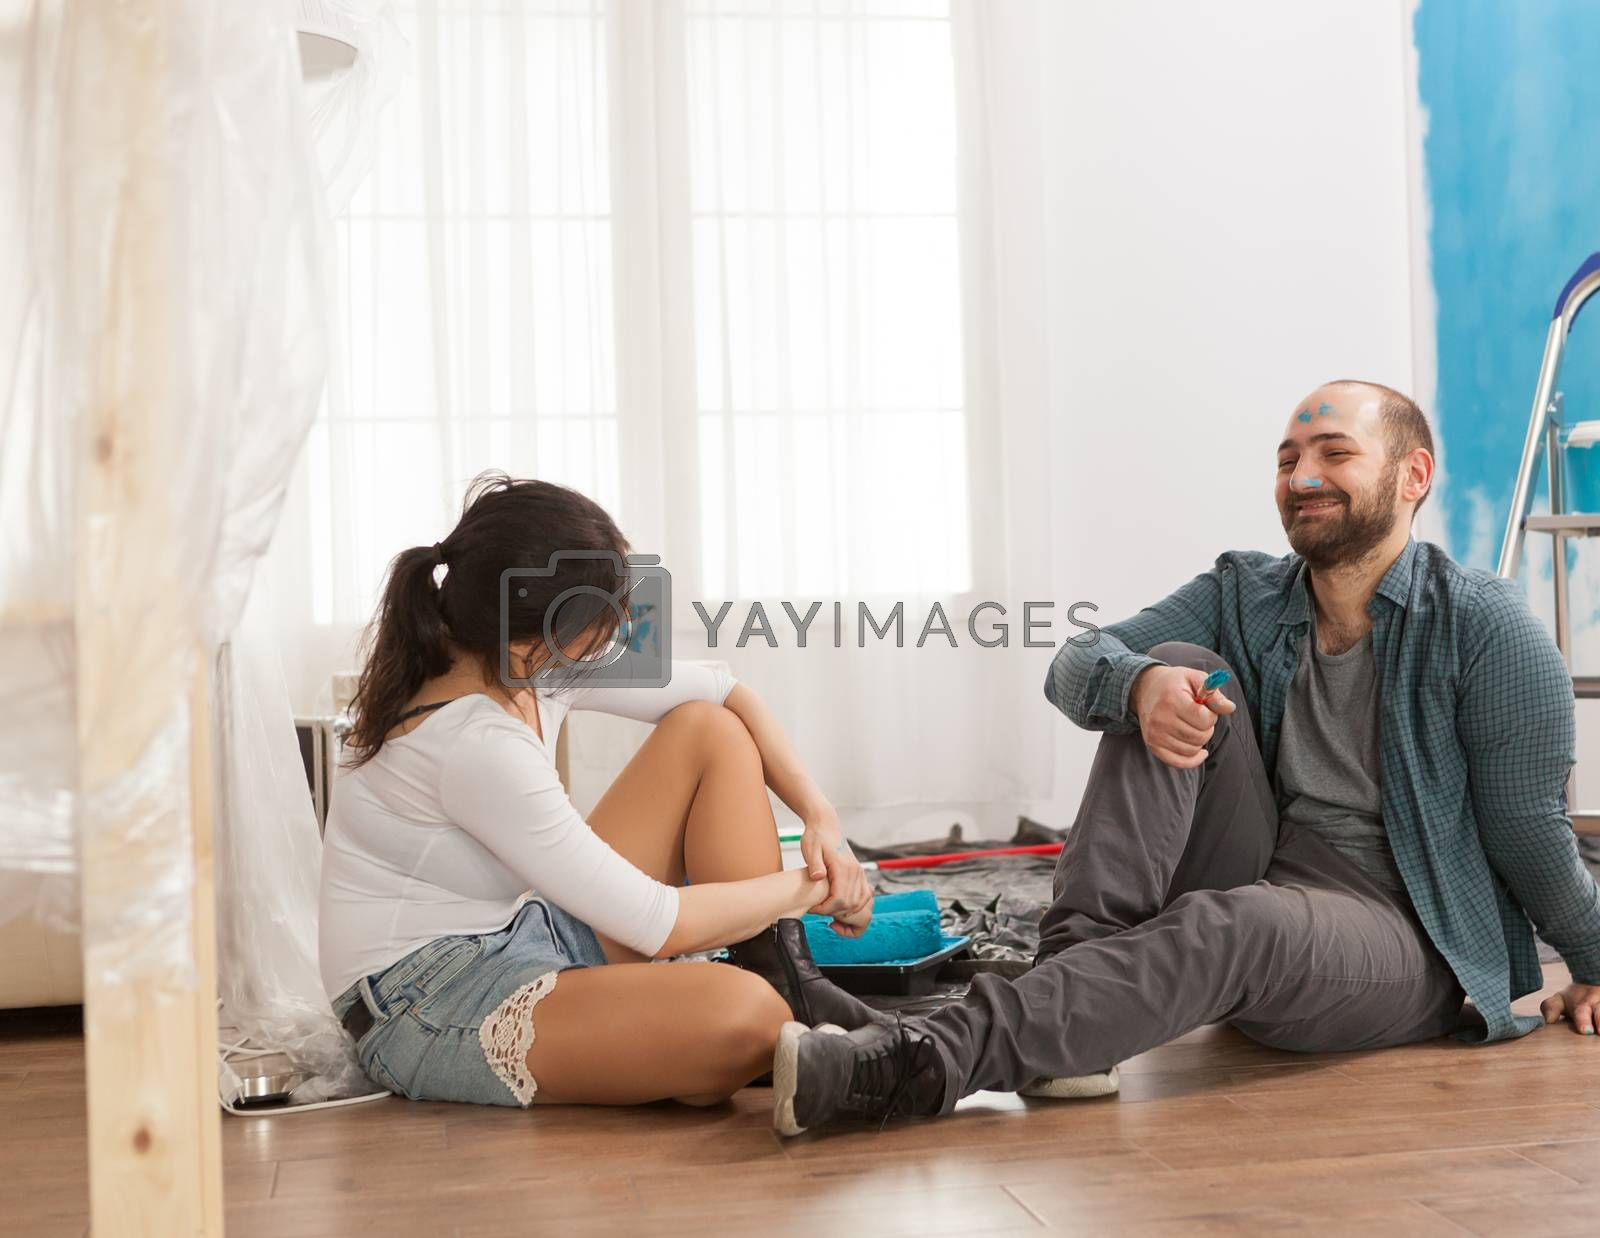 Tired and happy couple, painted on the face, sitting on the floor after renovation. Apartment redecoration and home construction while renovating and improving. Repair and decorating.